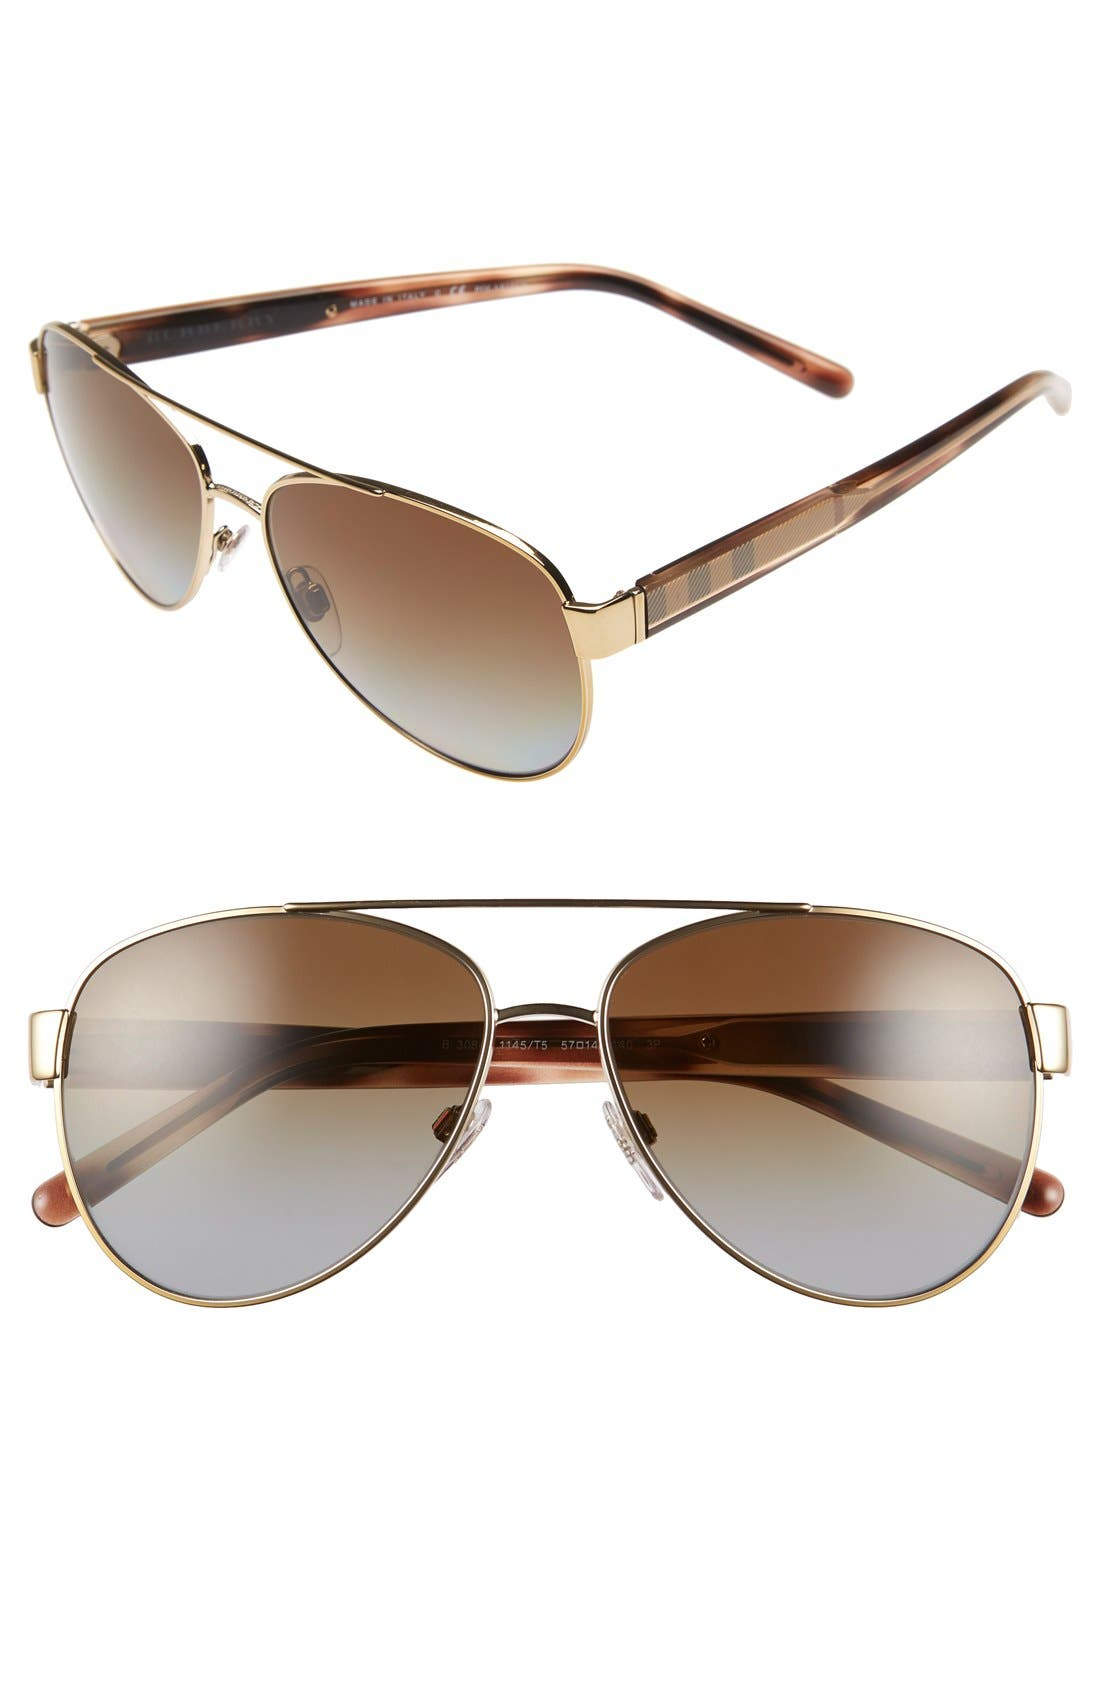 Main Image - Burberry 57mm Polarized Aviator Sunglasses